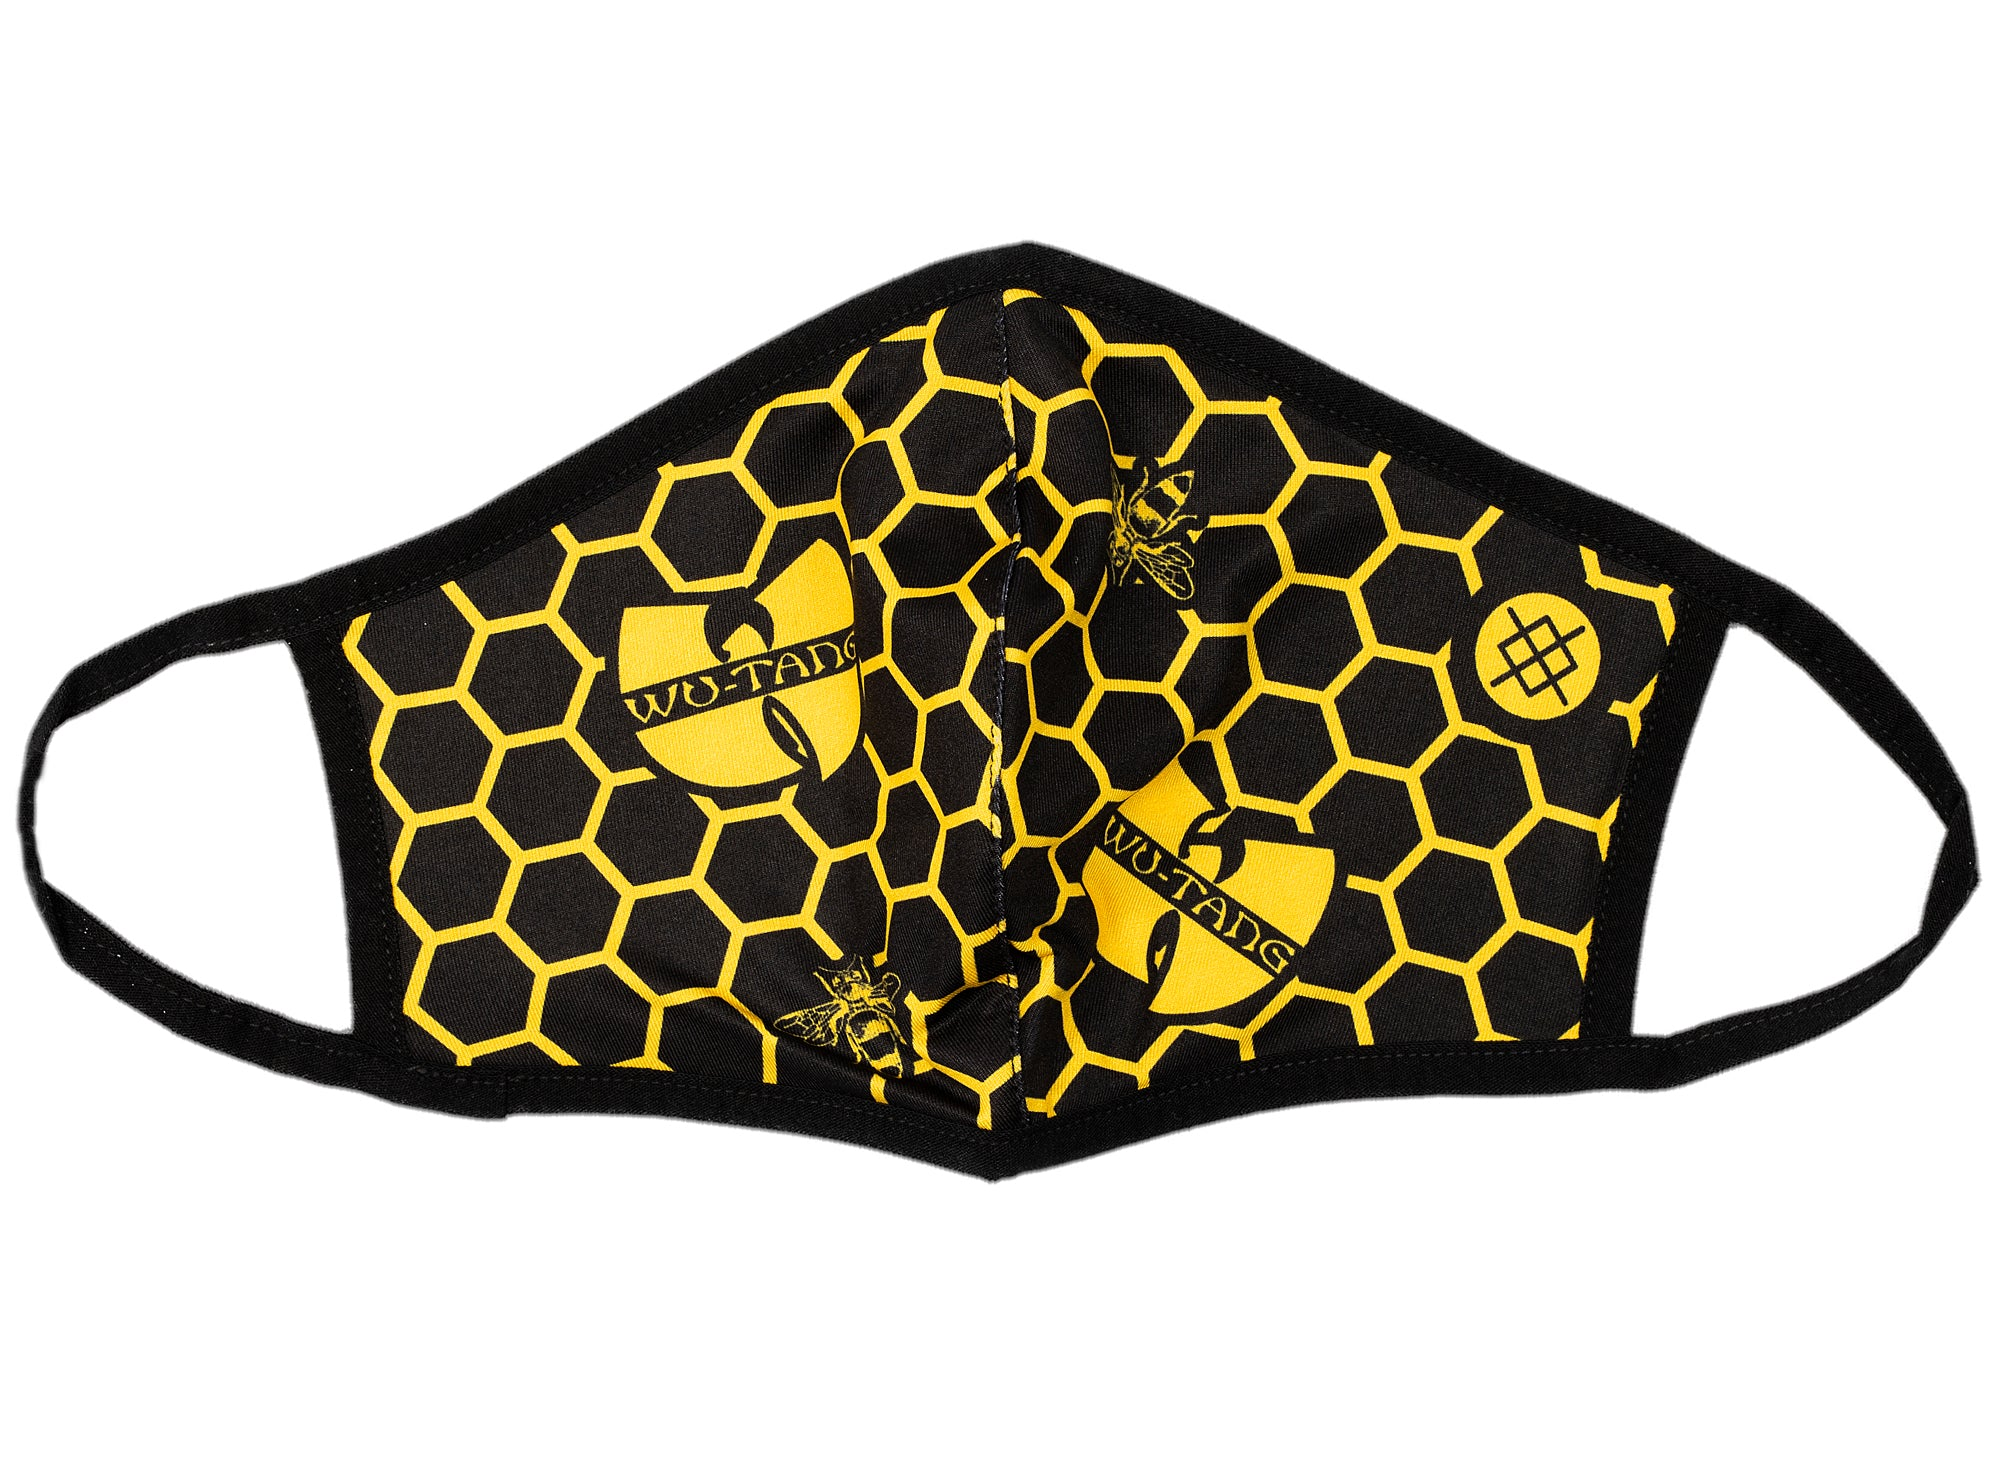 Stance Wu-Tang The Hive Face Mask xld